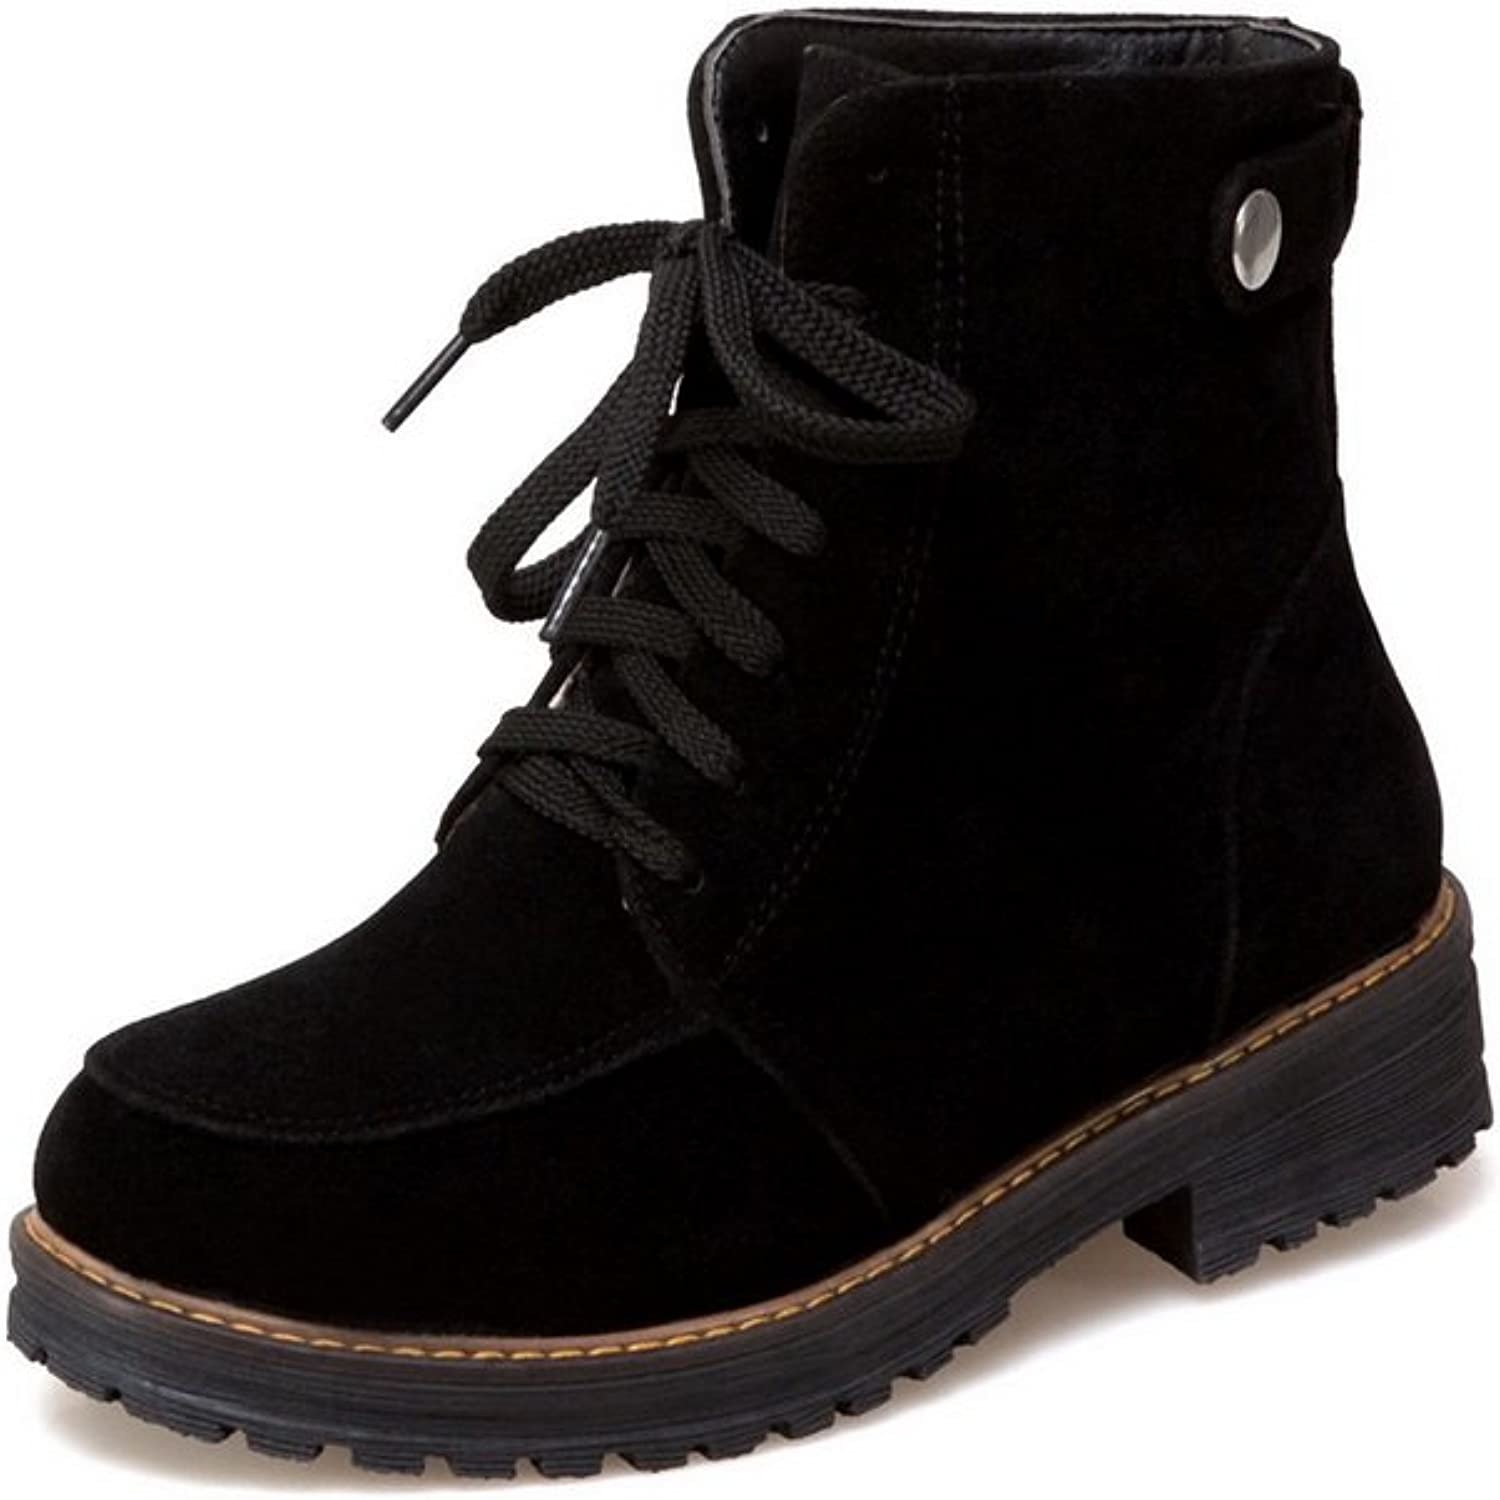 1TO9 Womens Boots Closed-Toe Lace-Up Adjustable-Strap Low-Heels Warm Lining Low-Top Nubuck Urethane Boots MNS02402